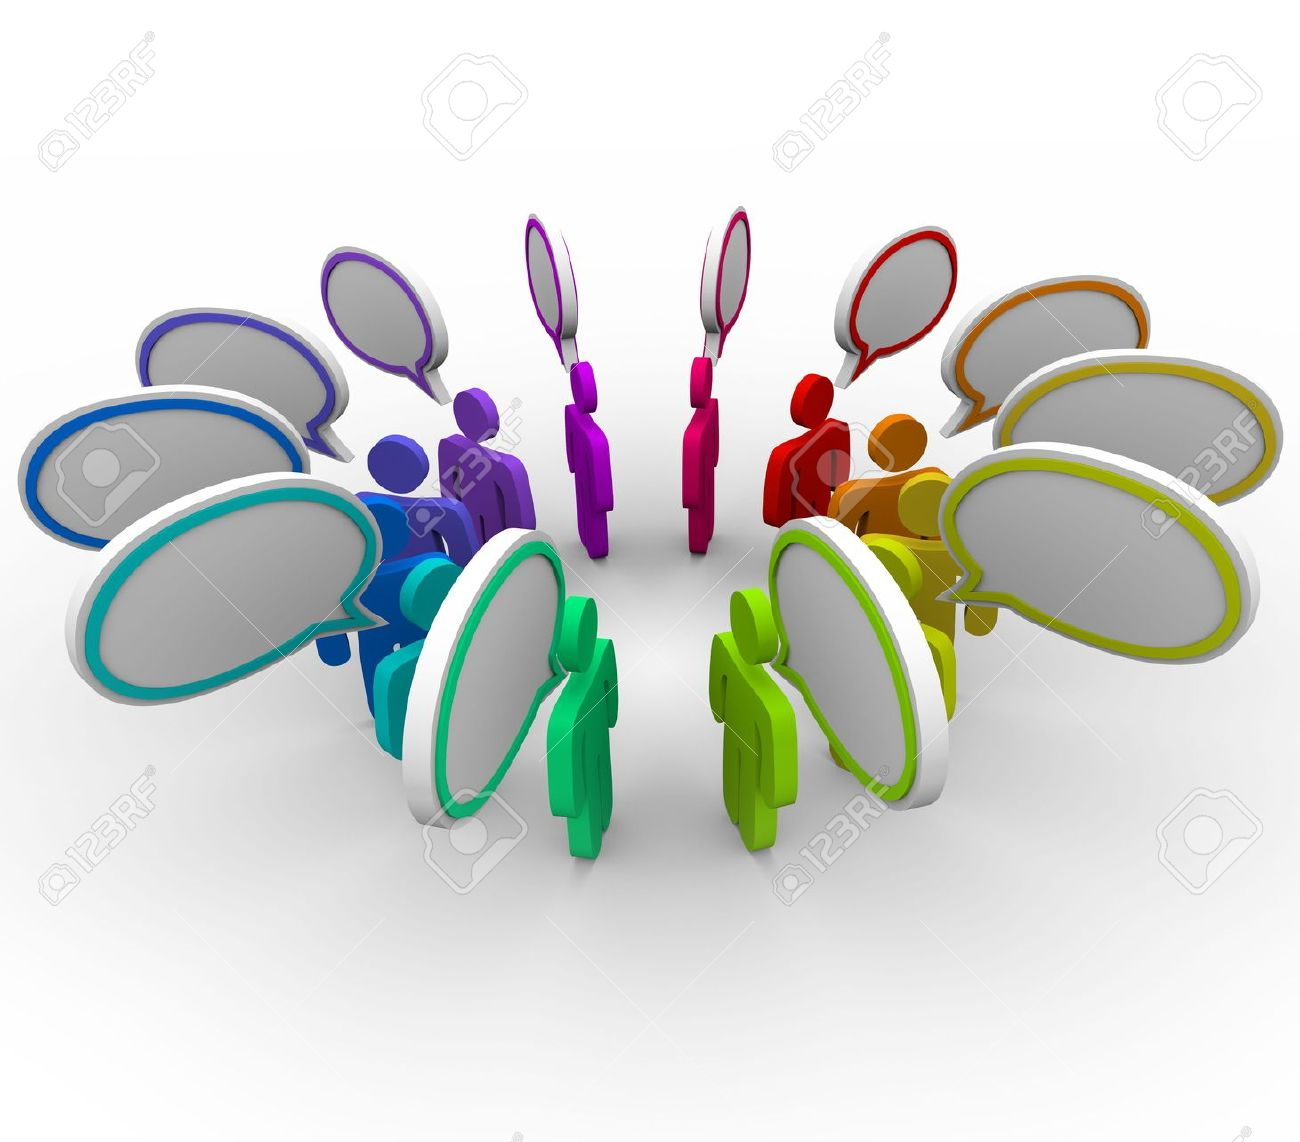 A network of people stand in a circle sharing information in speech bubbles Stock Photo - 6331018